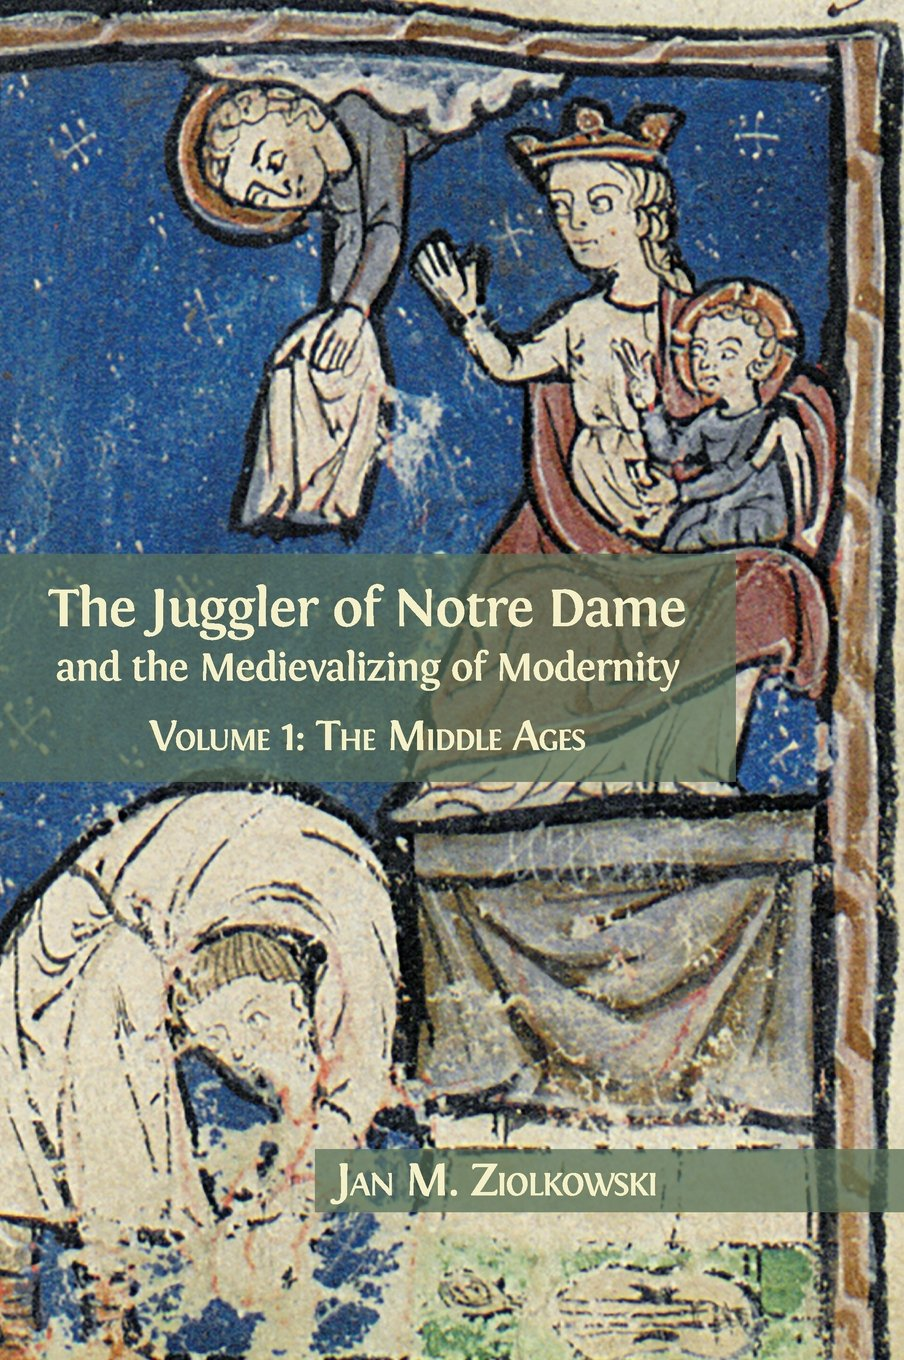 The Juggler of Notre Dame and the Medievalizing of